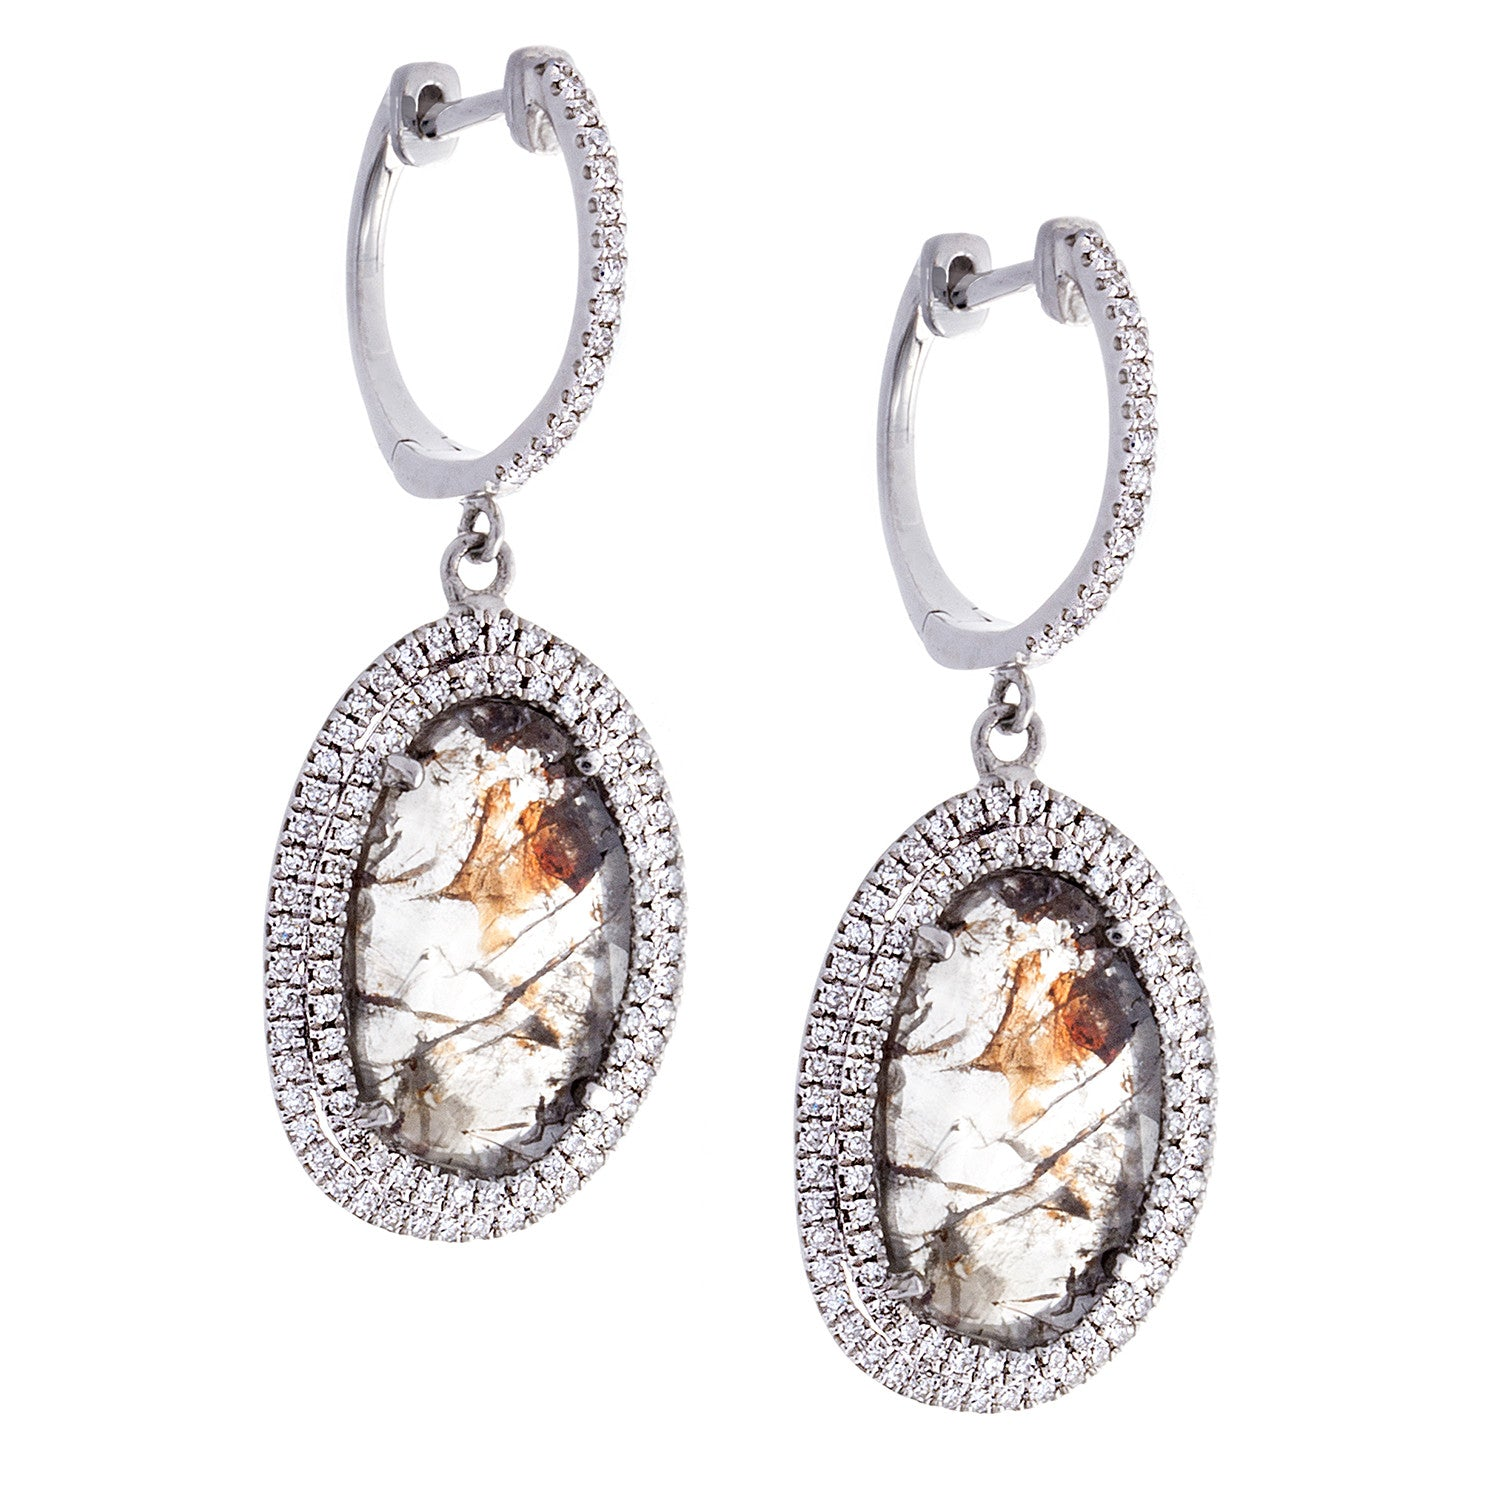 Diamonds & 14K White Gold Drop Earrings